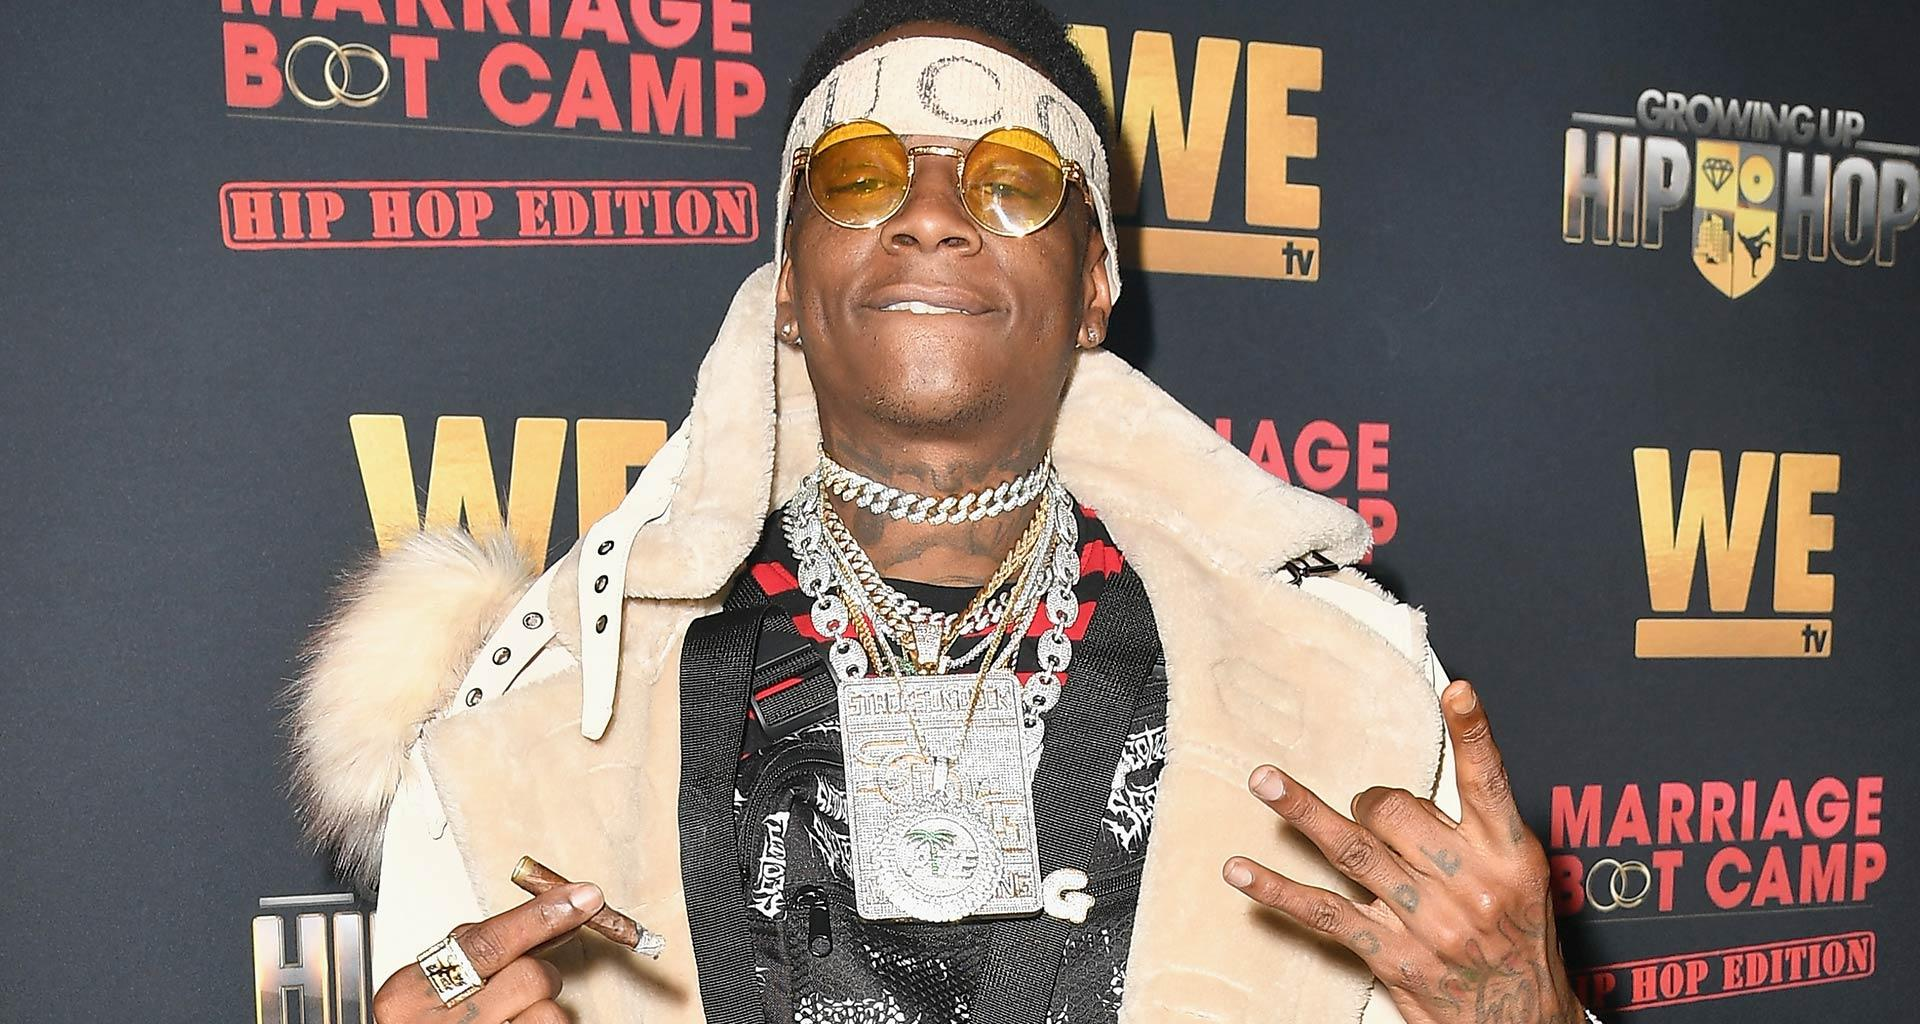 Soulja Boy Reportedly Believes That The Burglary At His House Was 'An Inside Job'